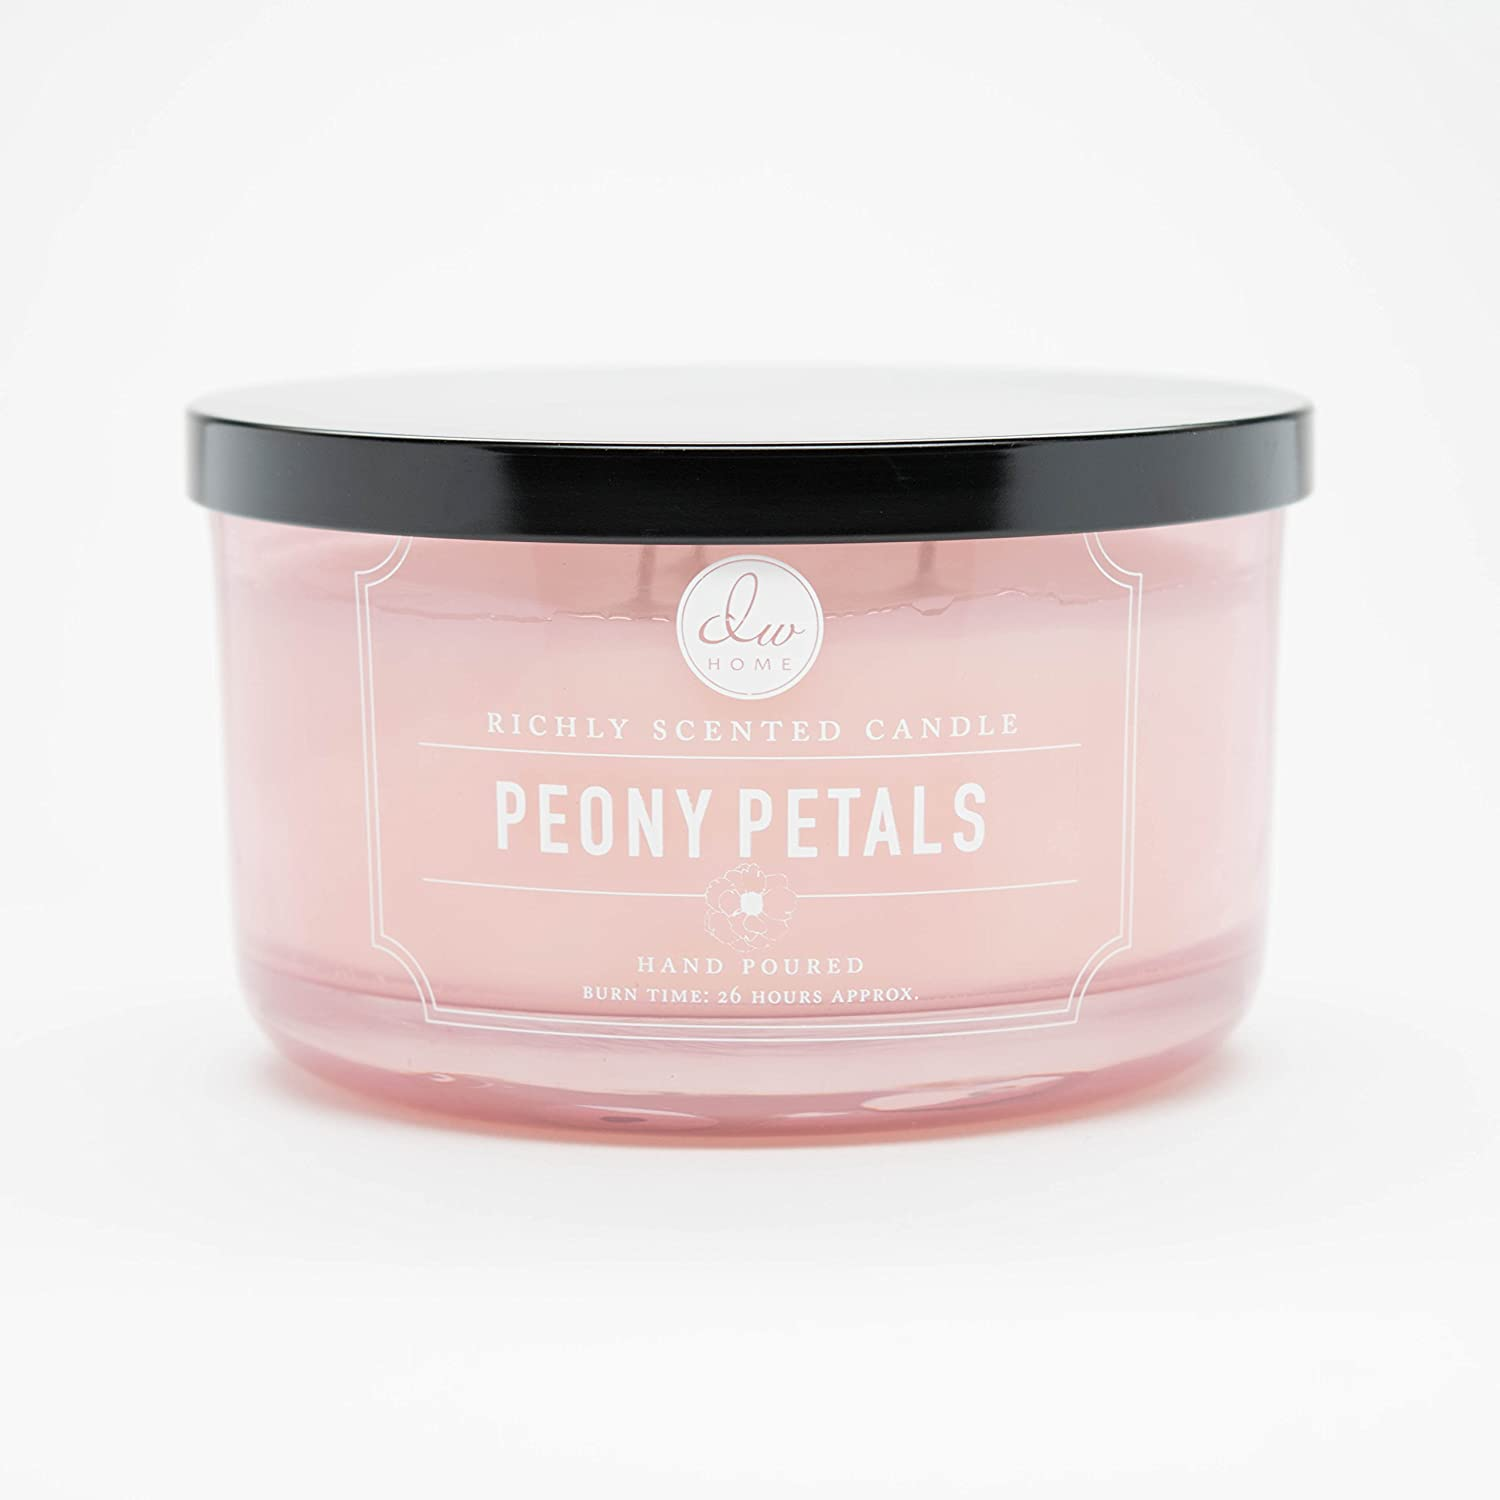 DW Home Large Triple Wick Candle, Peony Petals